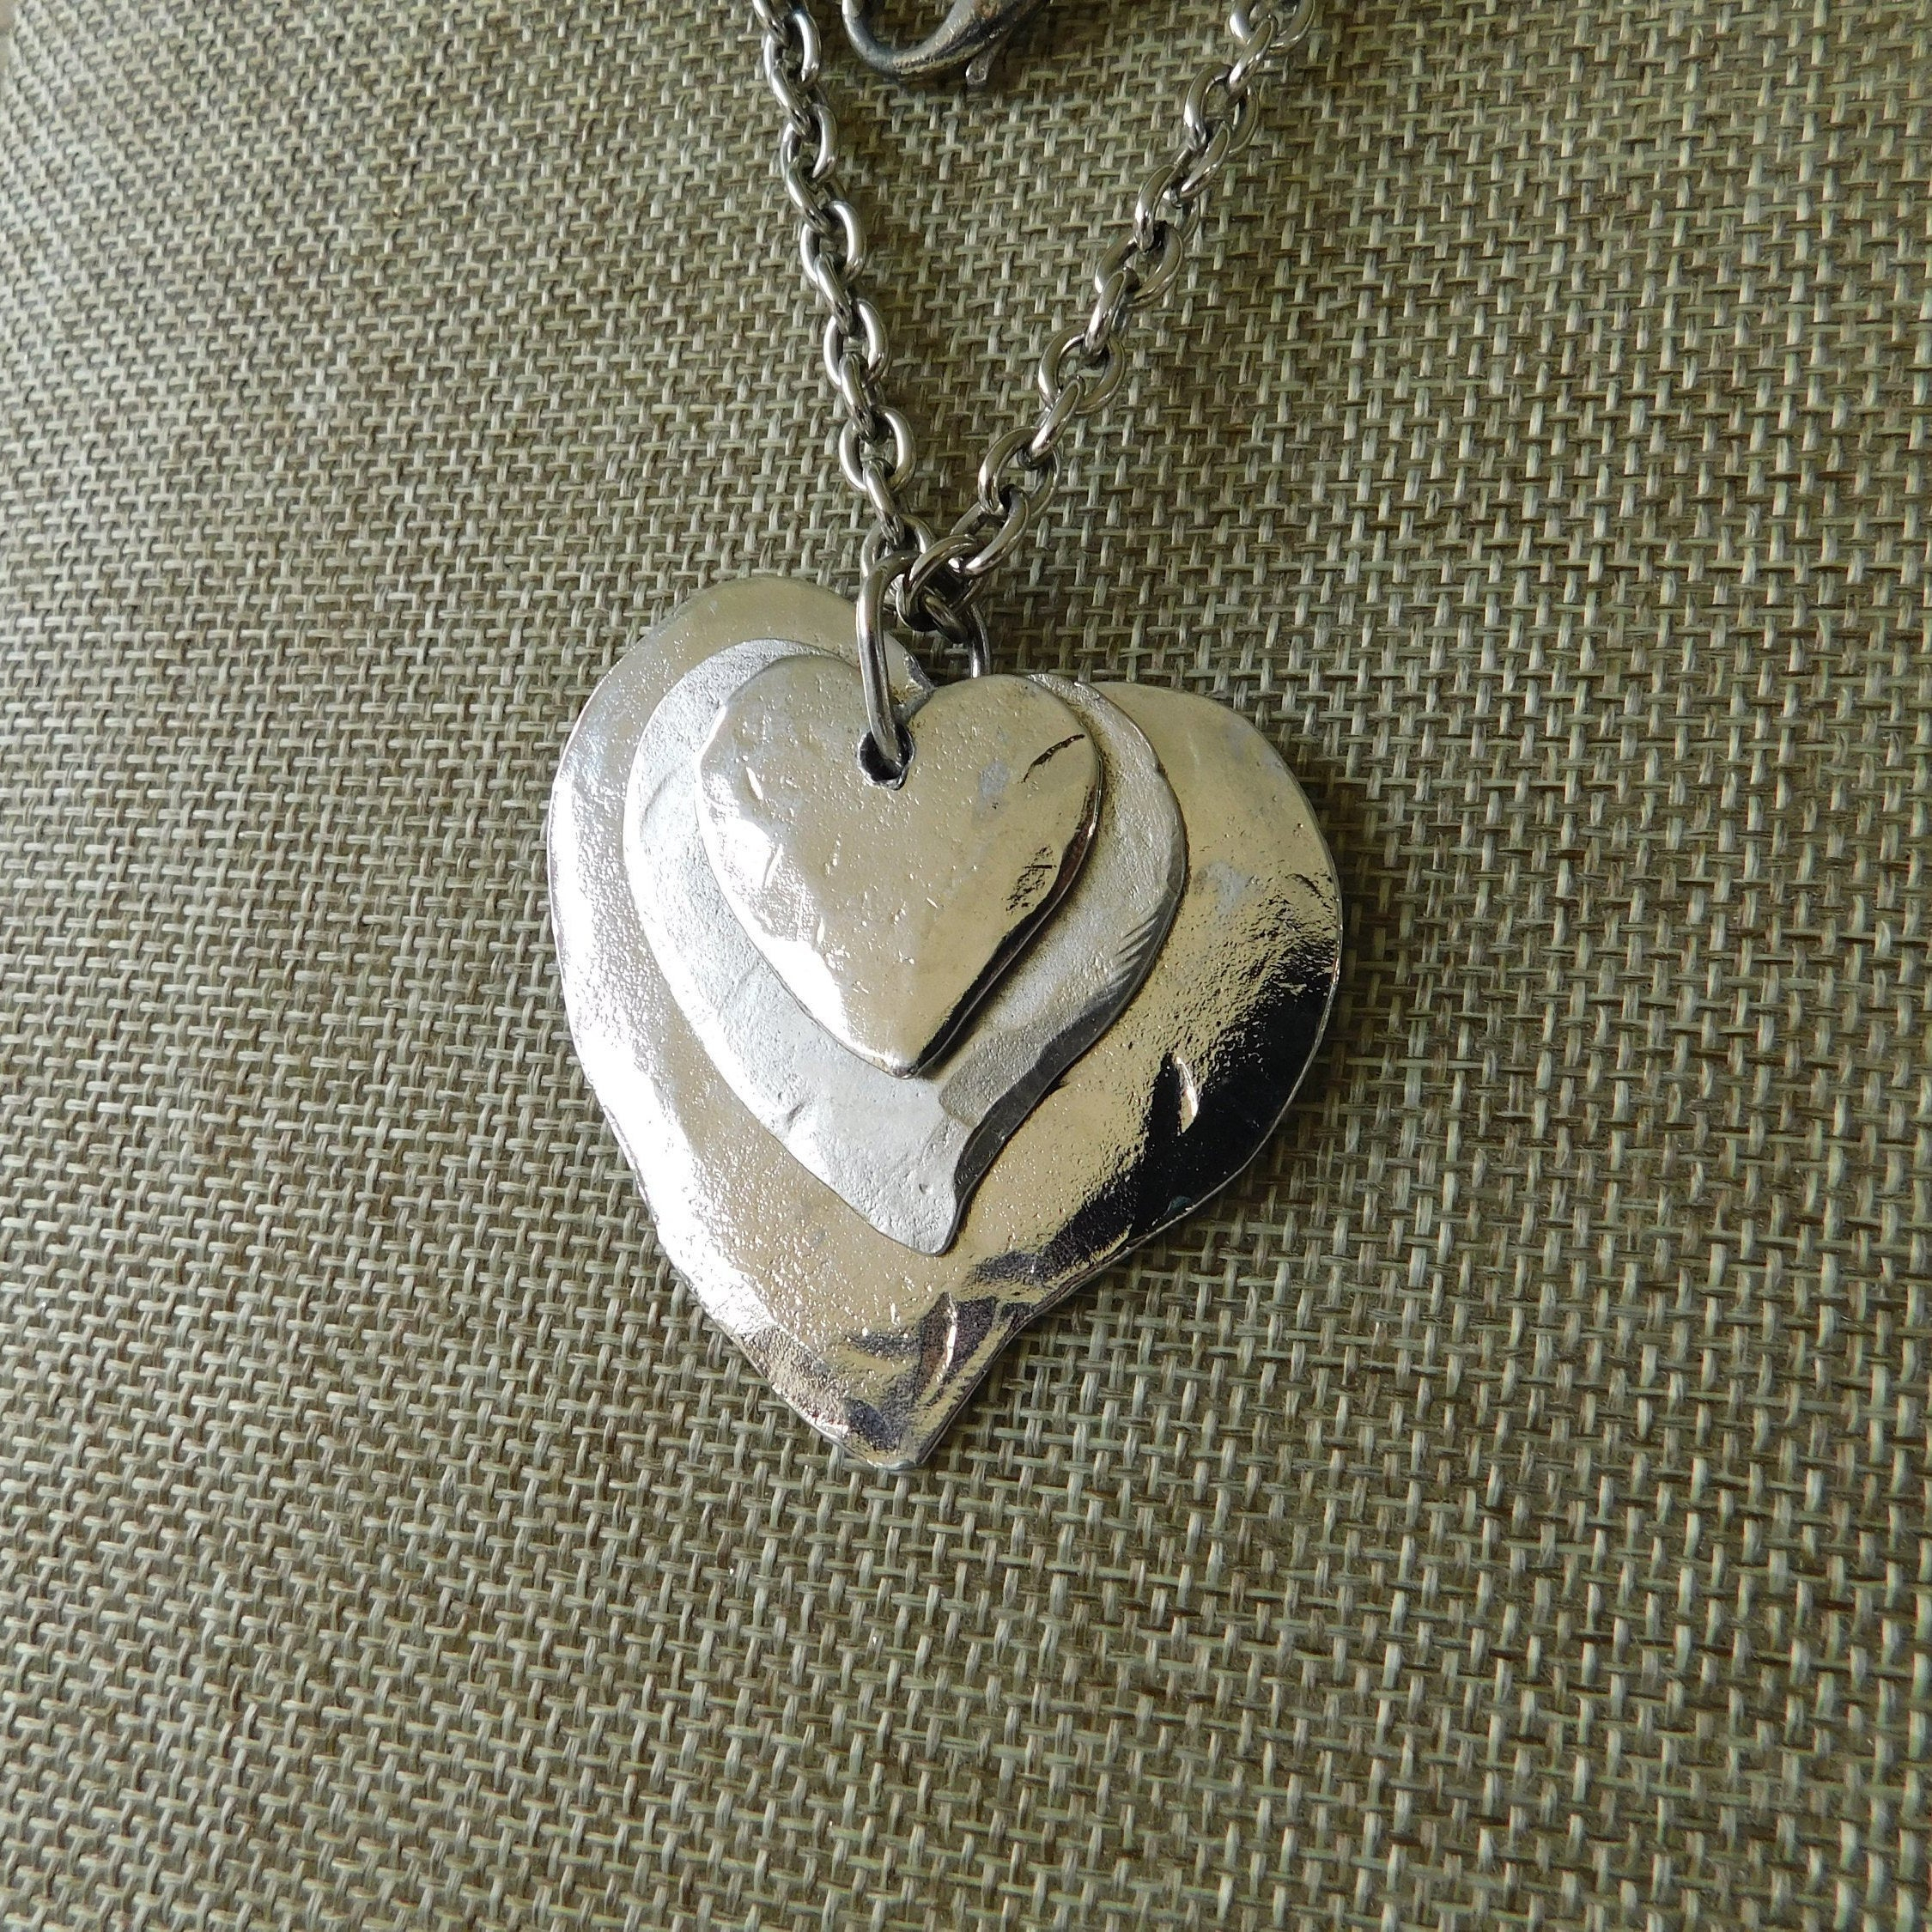 Hand Crafted Silver Hammered Heart Necklace, Triple Layer Hammered Heart Necklace, Artisan Silver Heart Necklace, Valentine Jewelry With Regard To Most Popular Matte Brilliance Heart Pendant Necklaces (View 10 of 25)